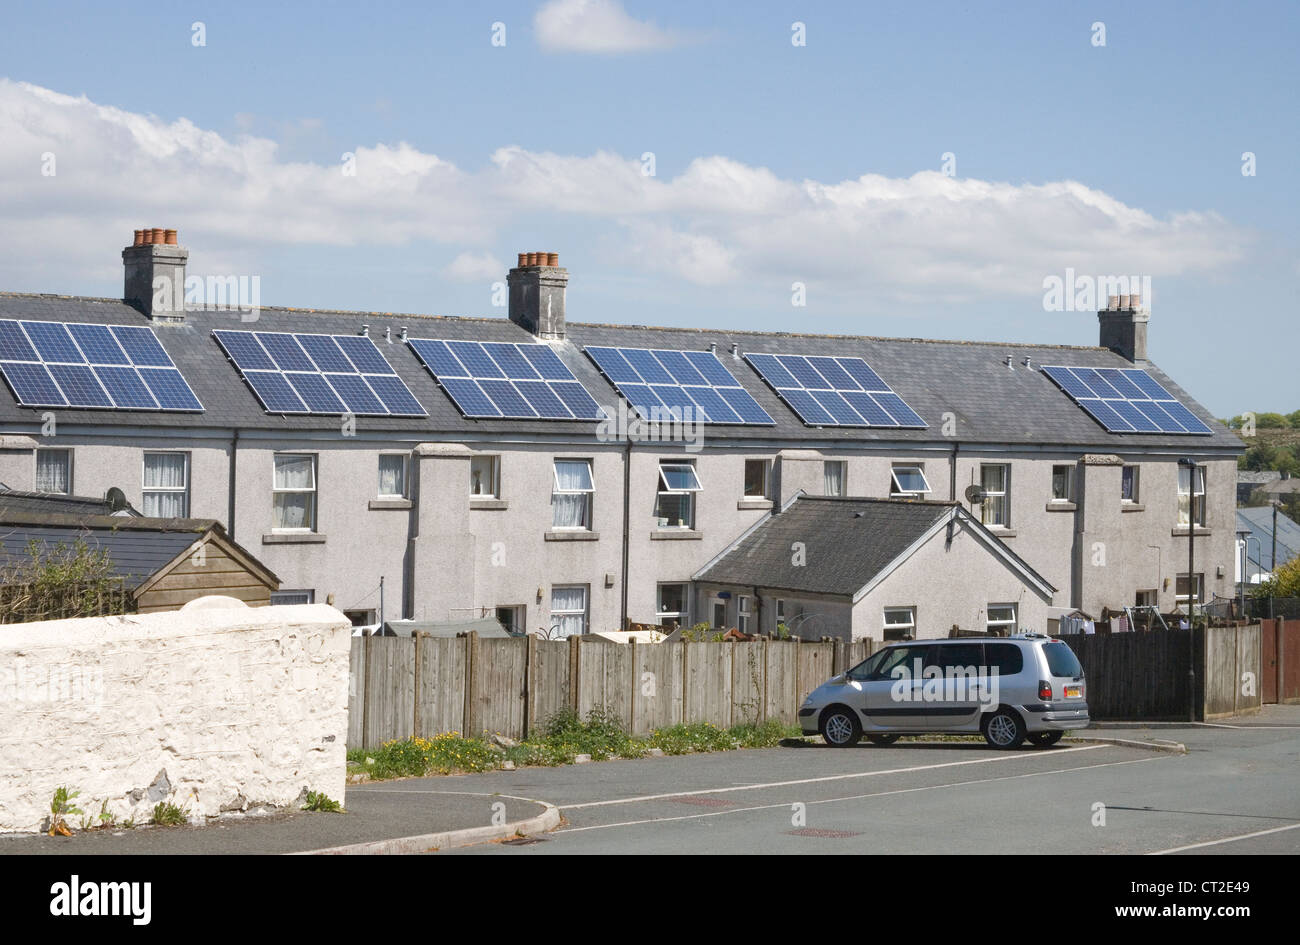 solar panels on houses at princetown on dartmoor national park - Stock Image